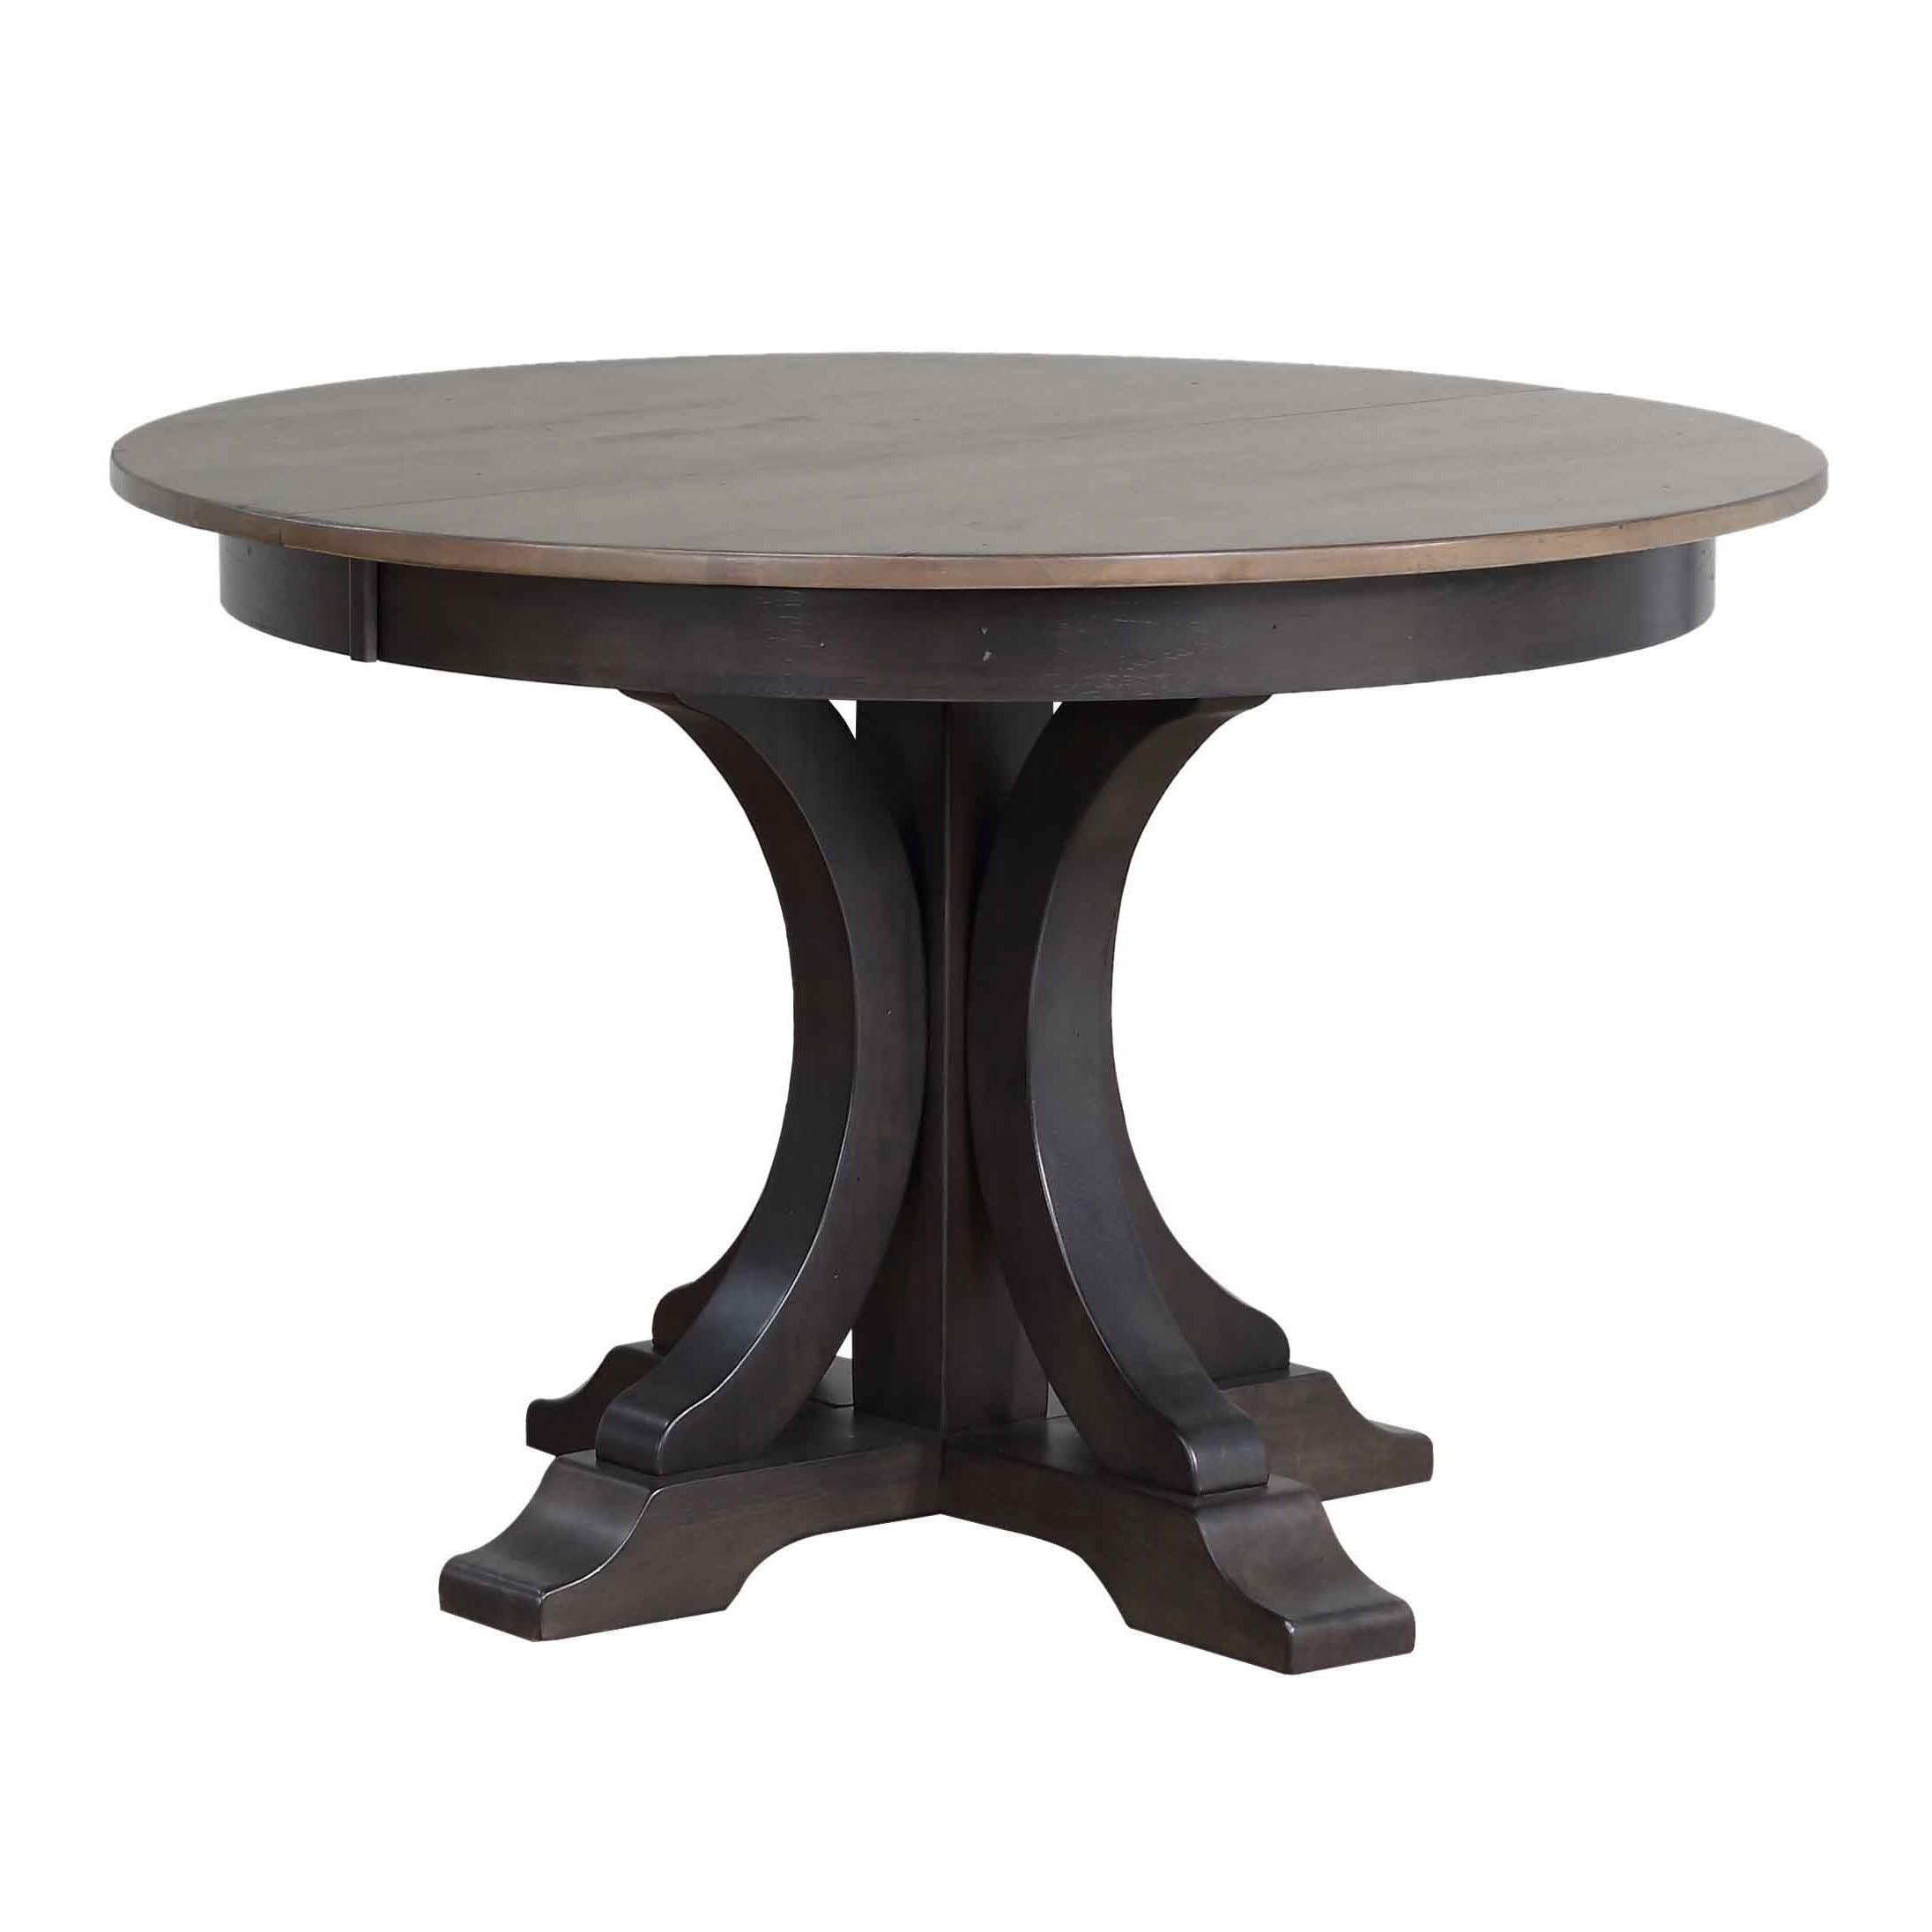 oak furniture com of p table crezena round inch dining pedestal prod ostkcdn flared dark america src